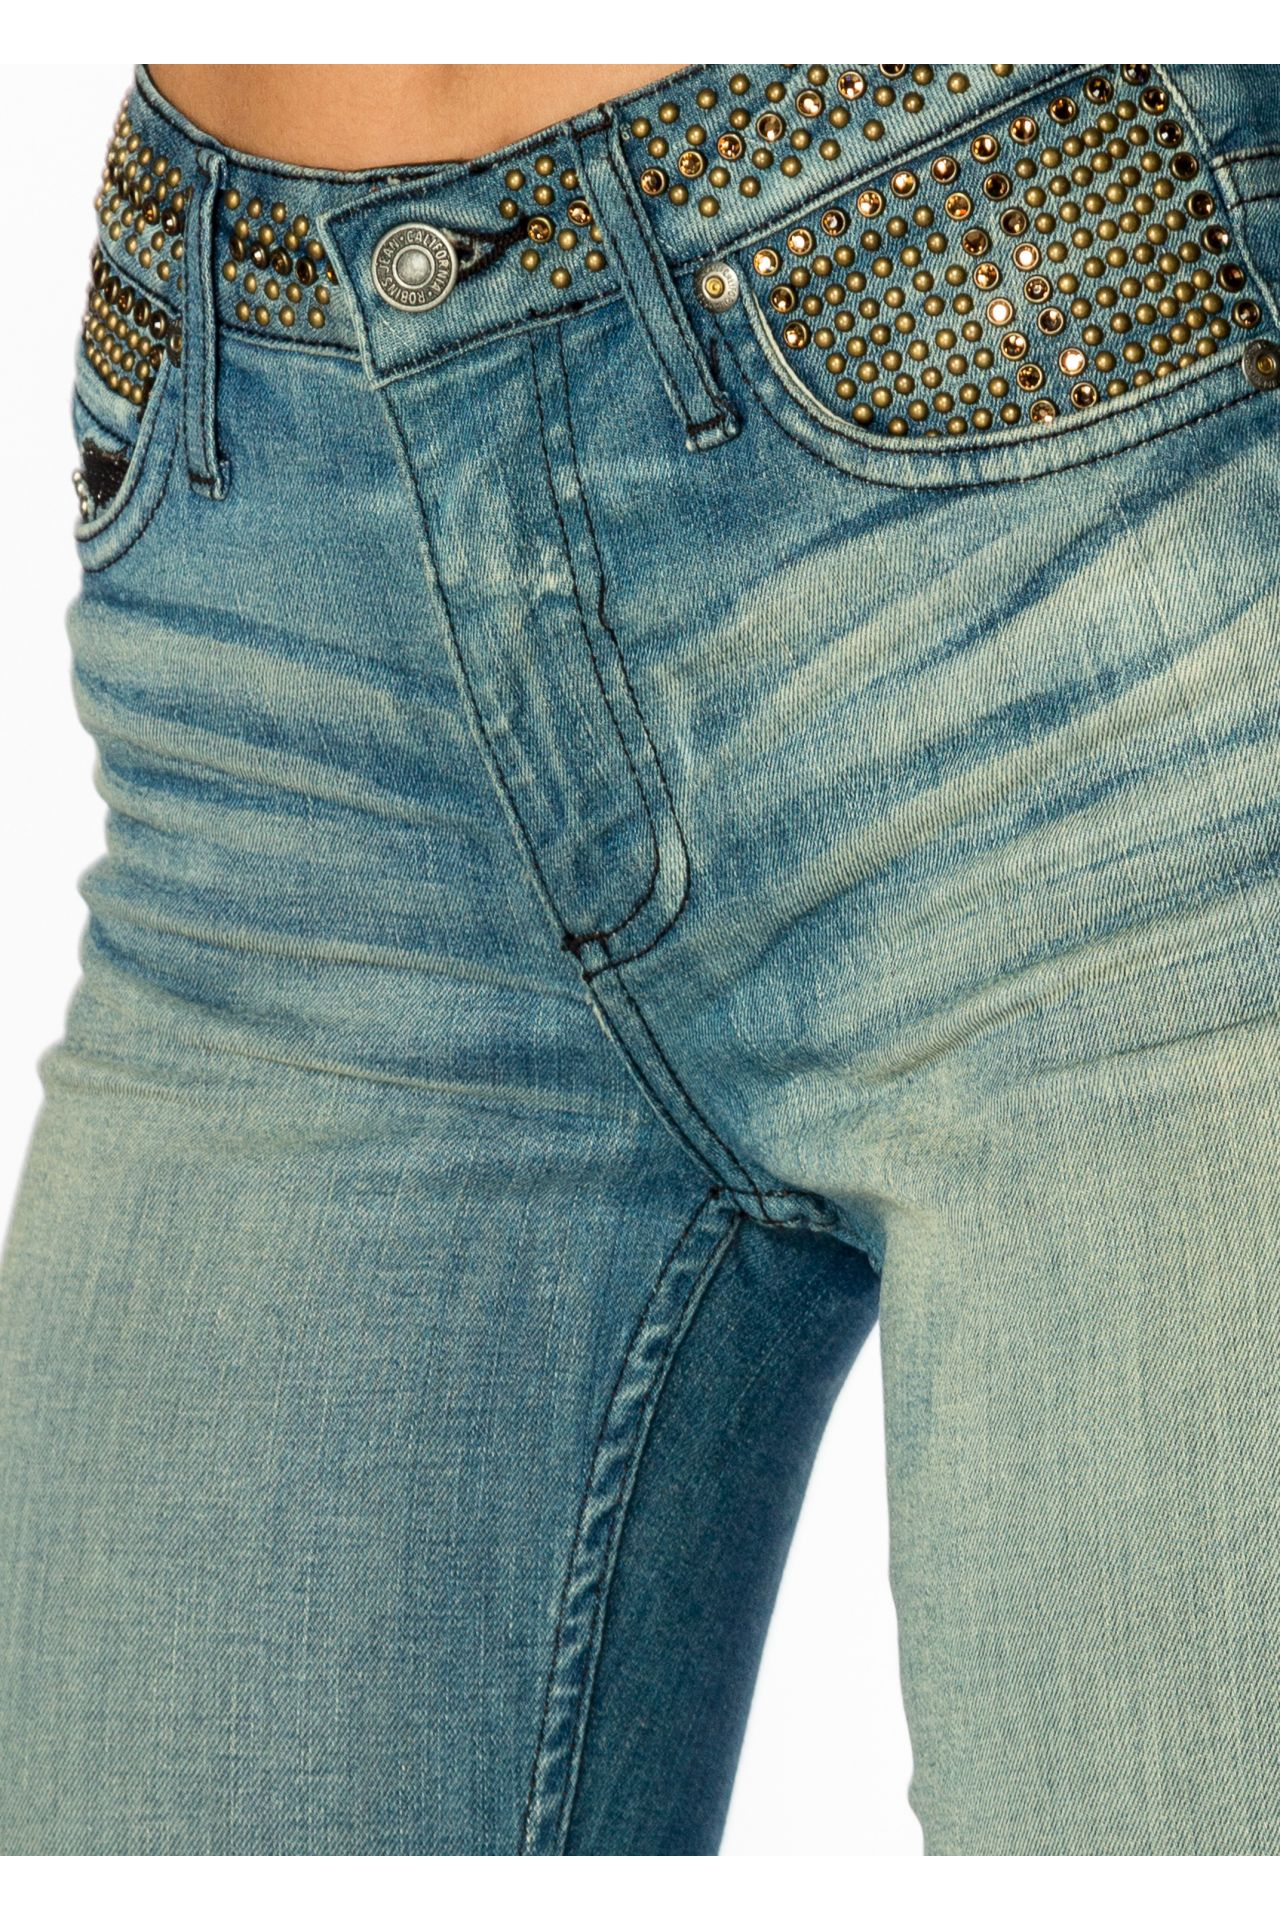 MID RISE SKINNY JEANS WITH BRASS STUDS